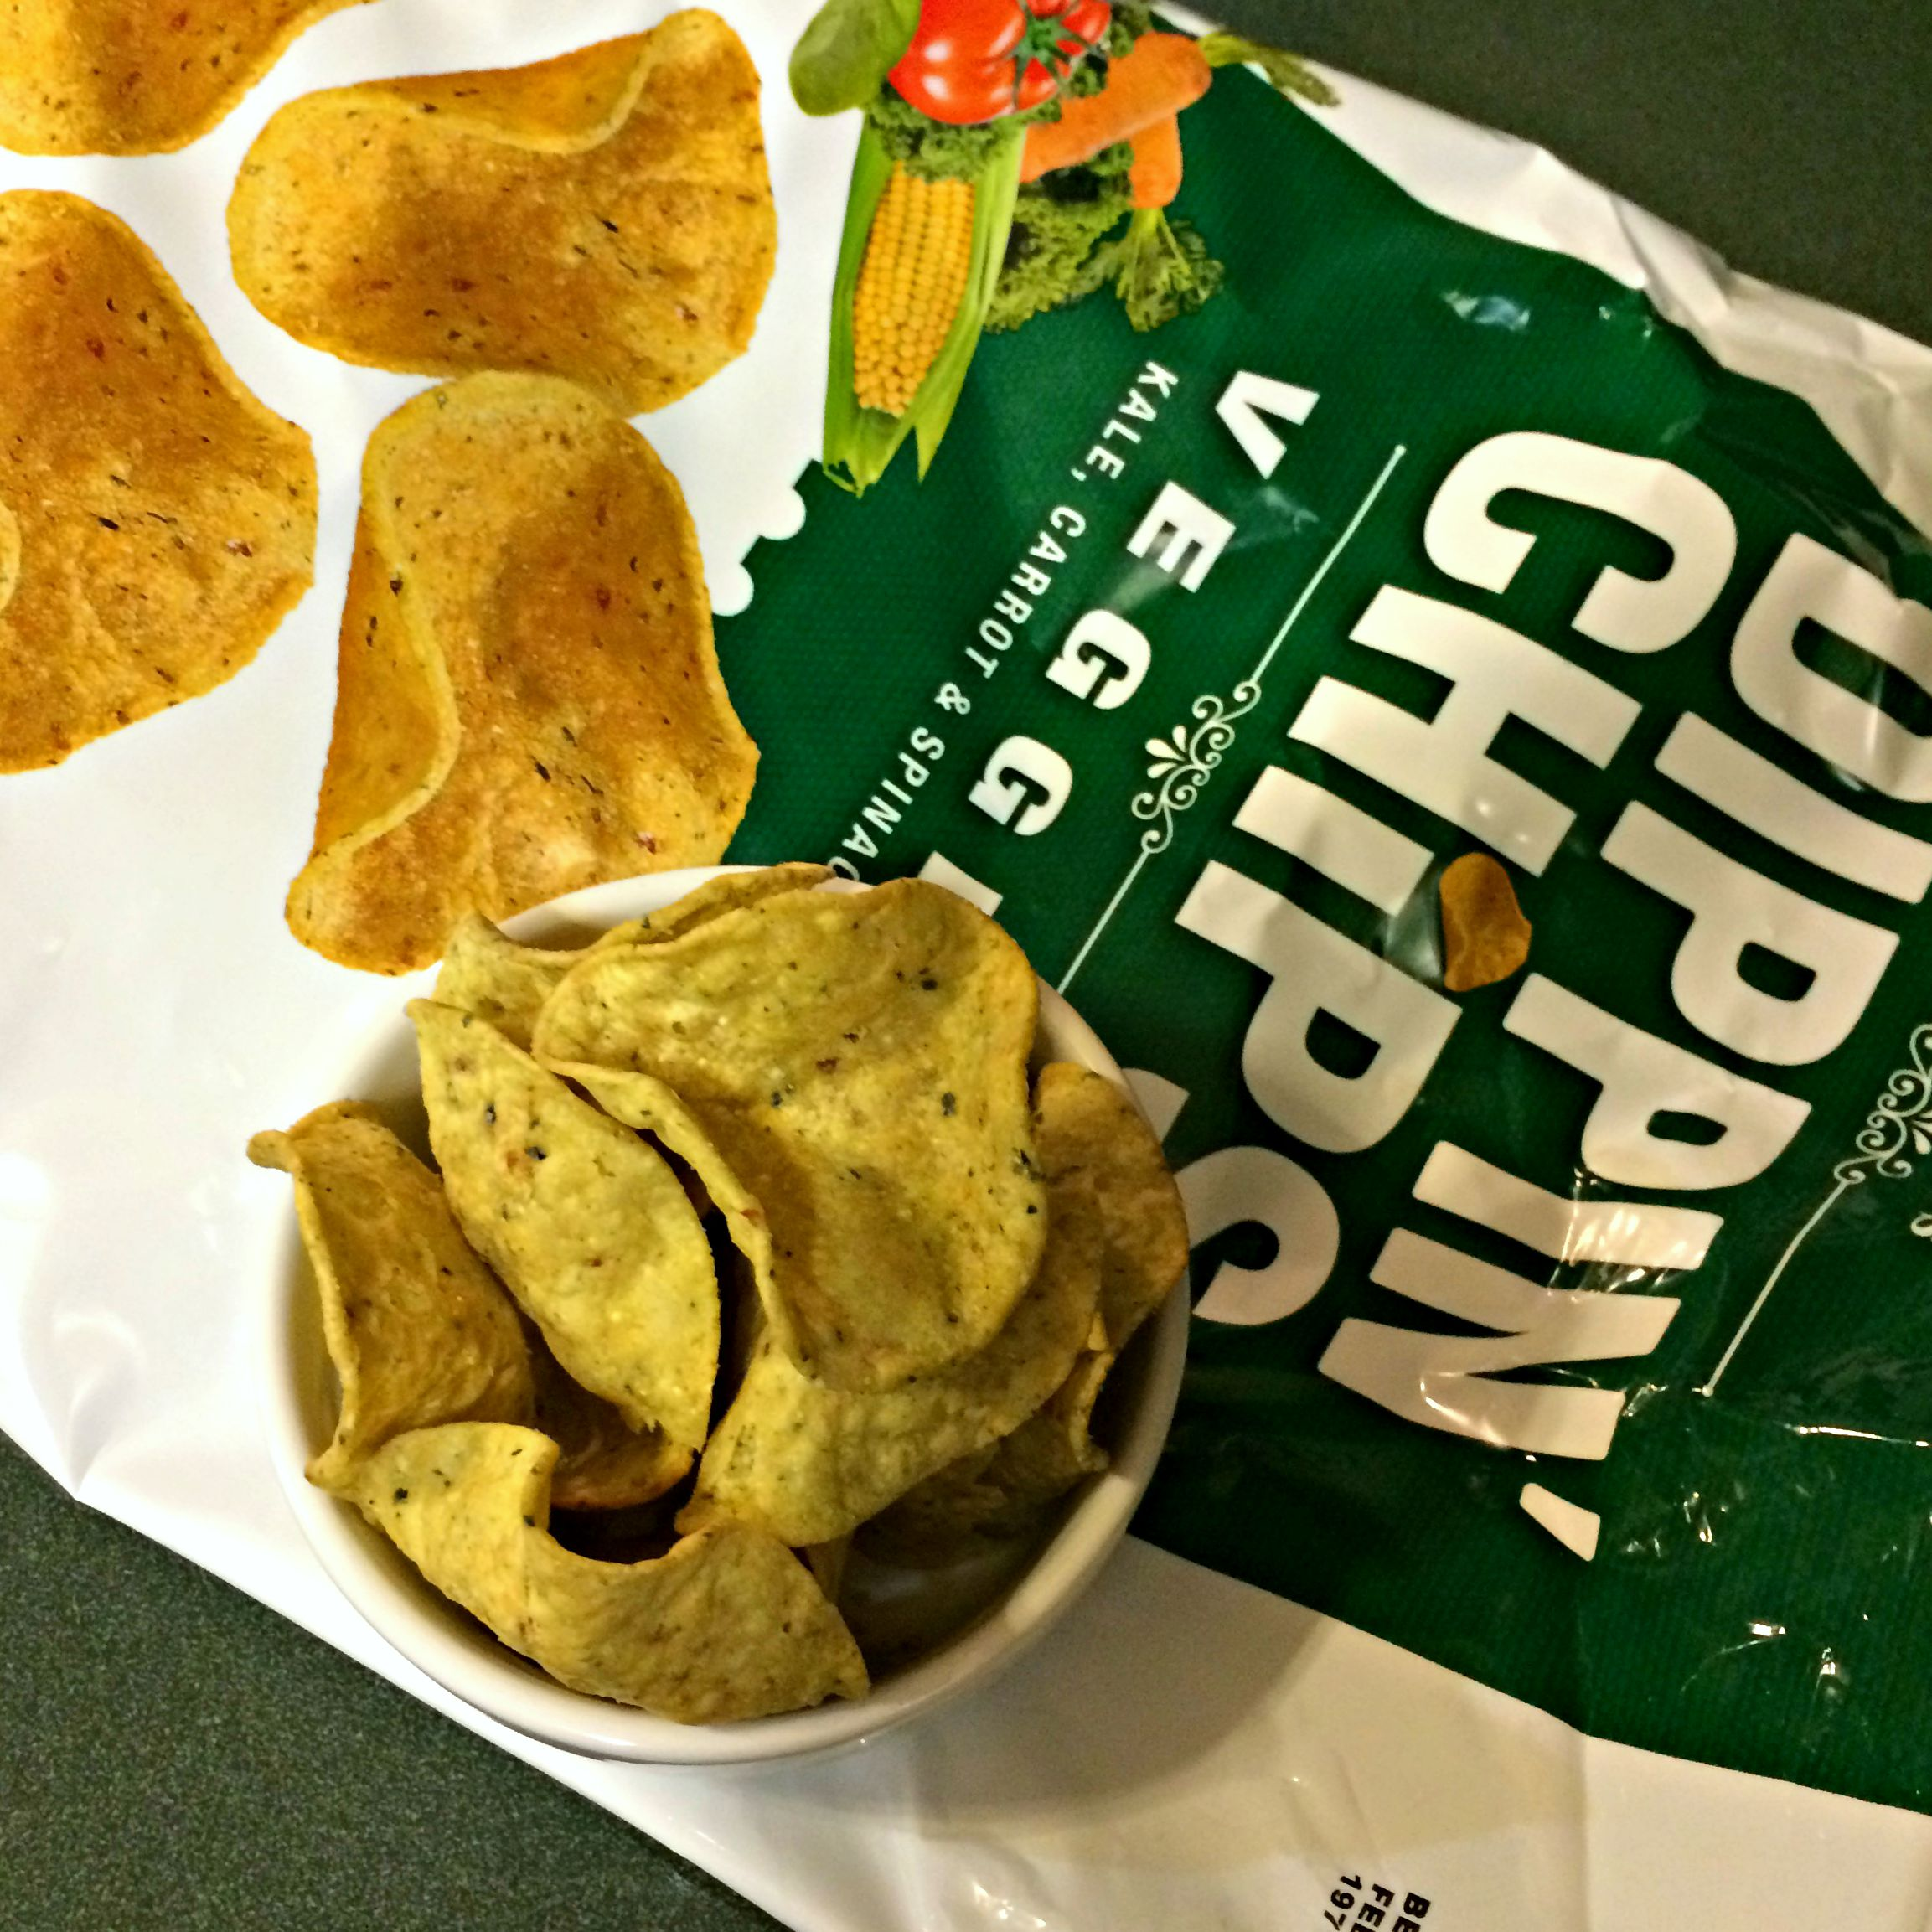 Dippin' Chips veggie kale, carrot & spinach